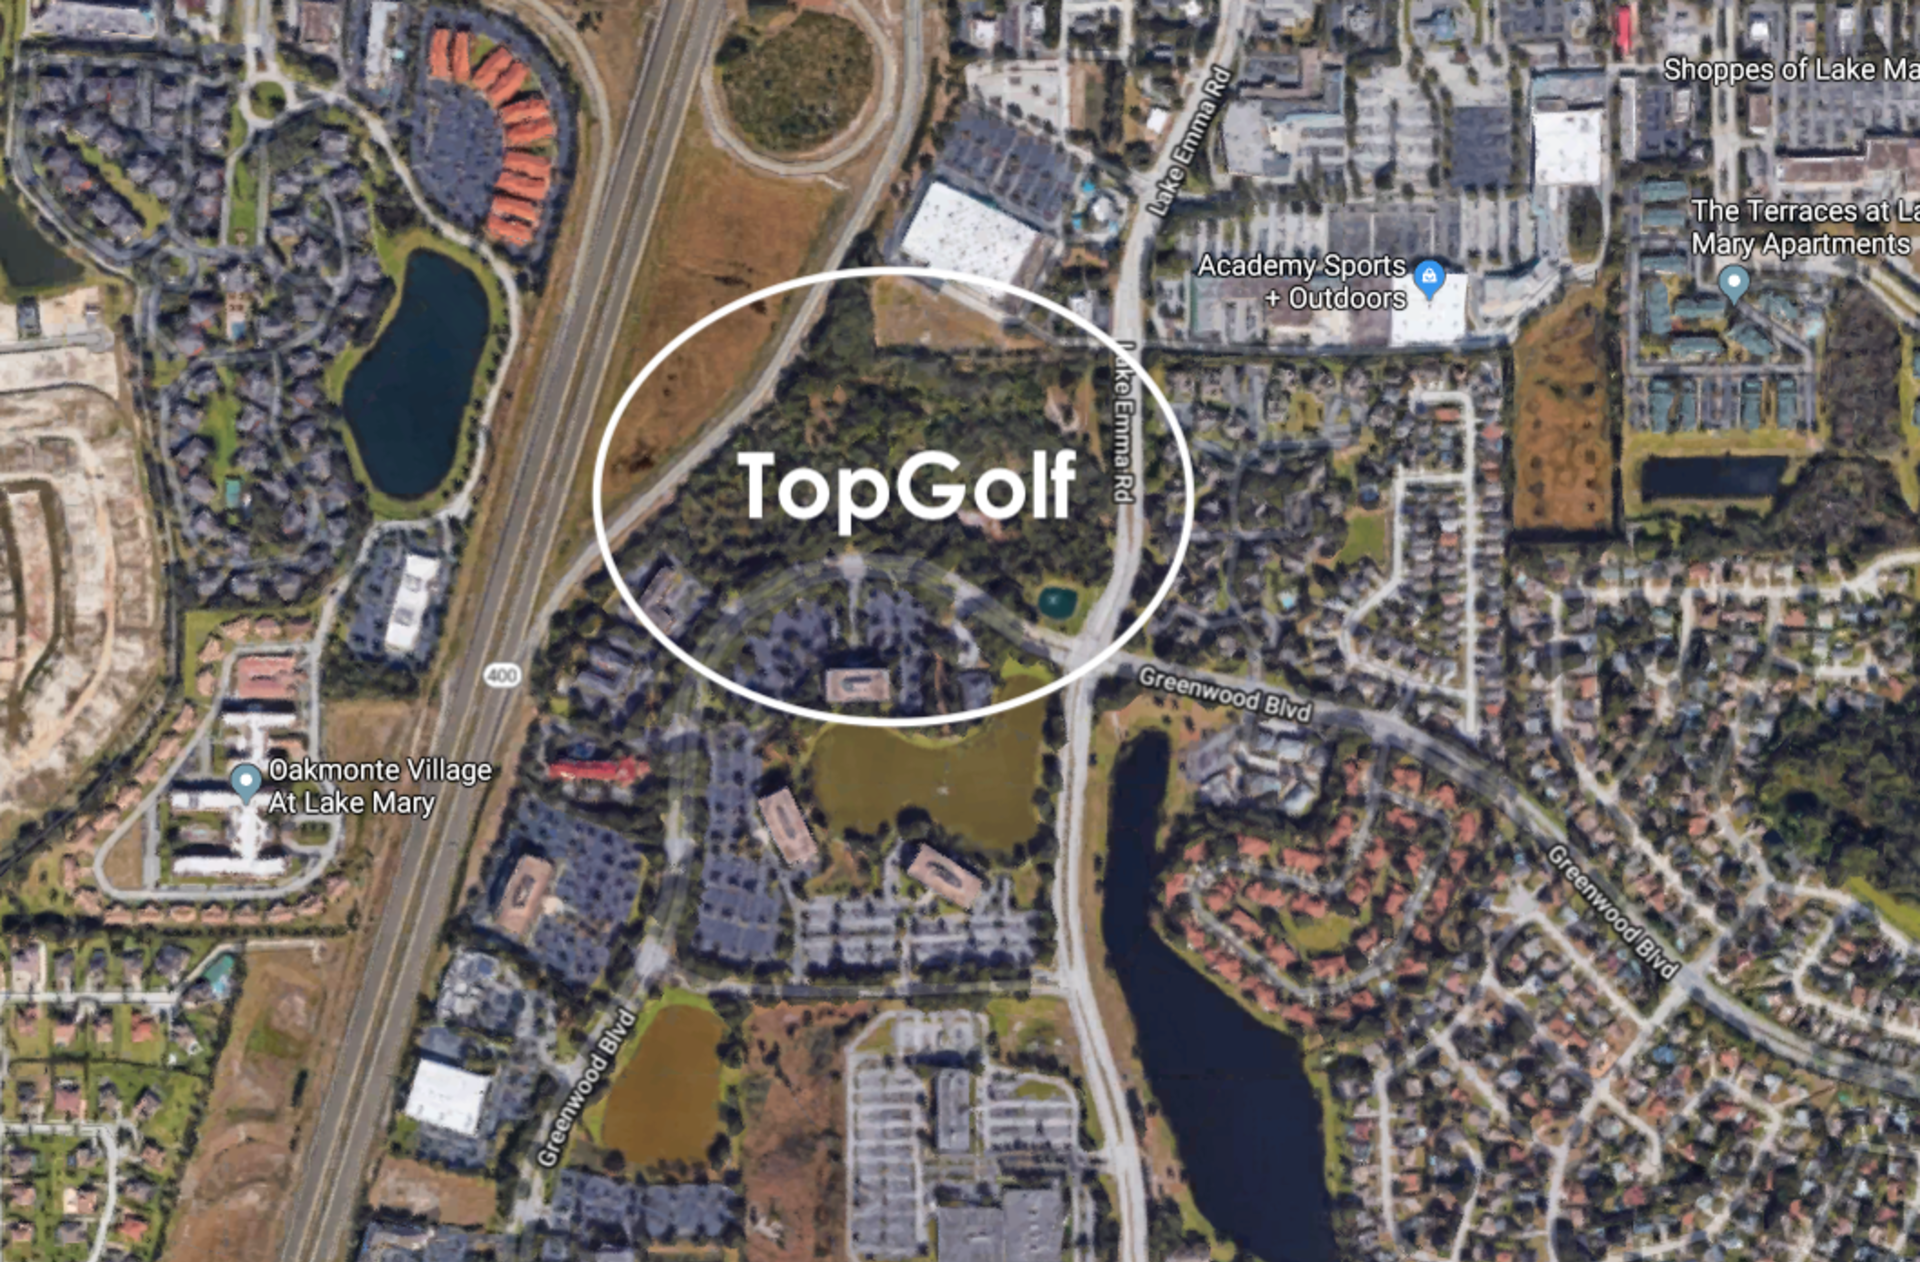 TopGolf is coming to Lake Mary FL